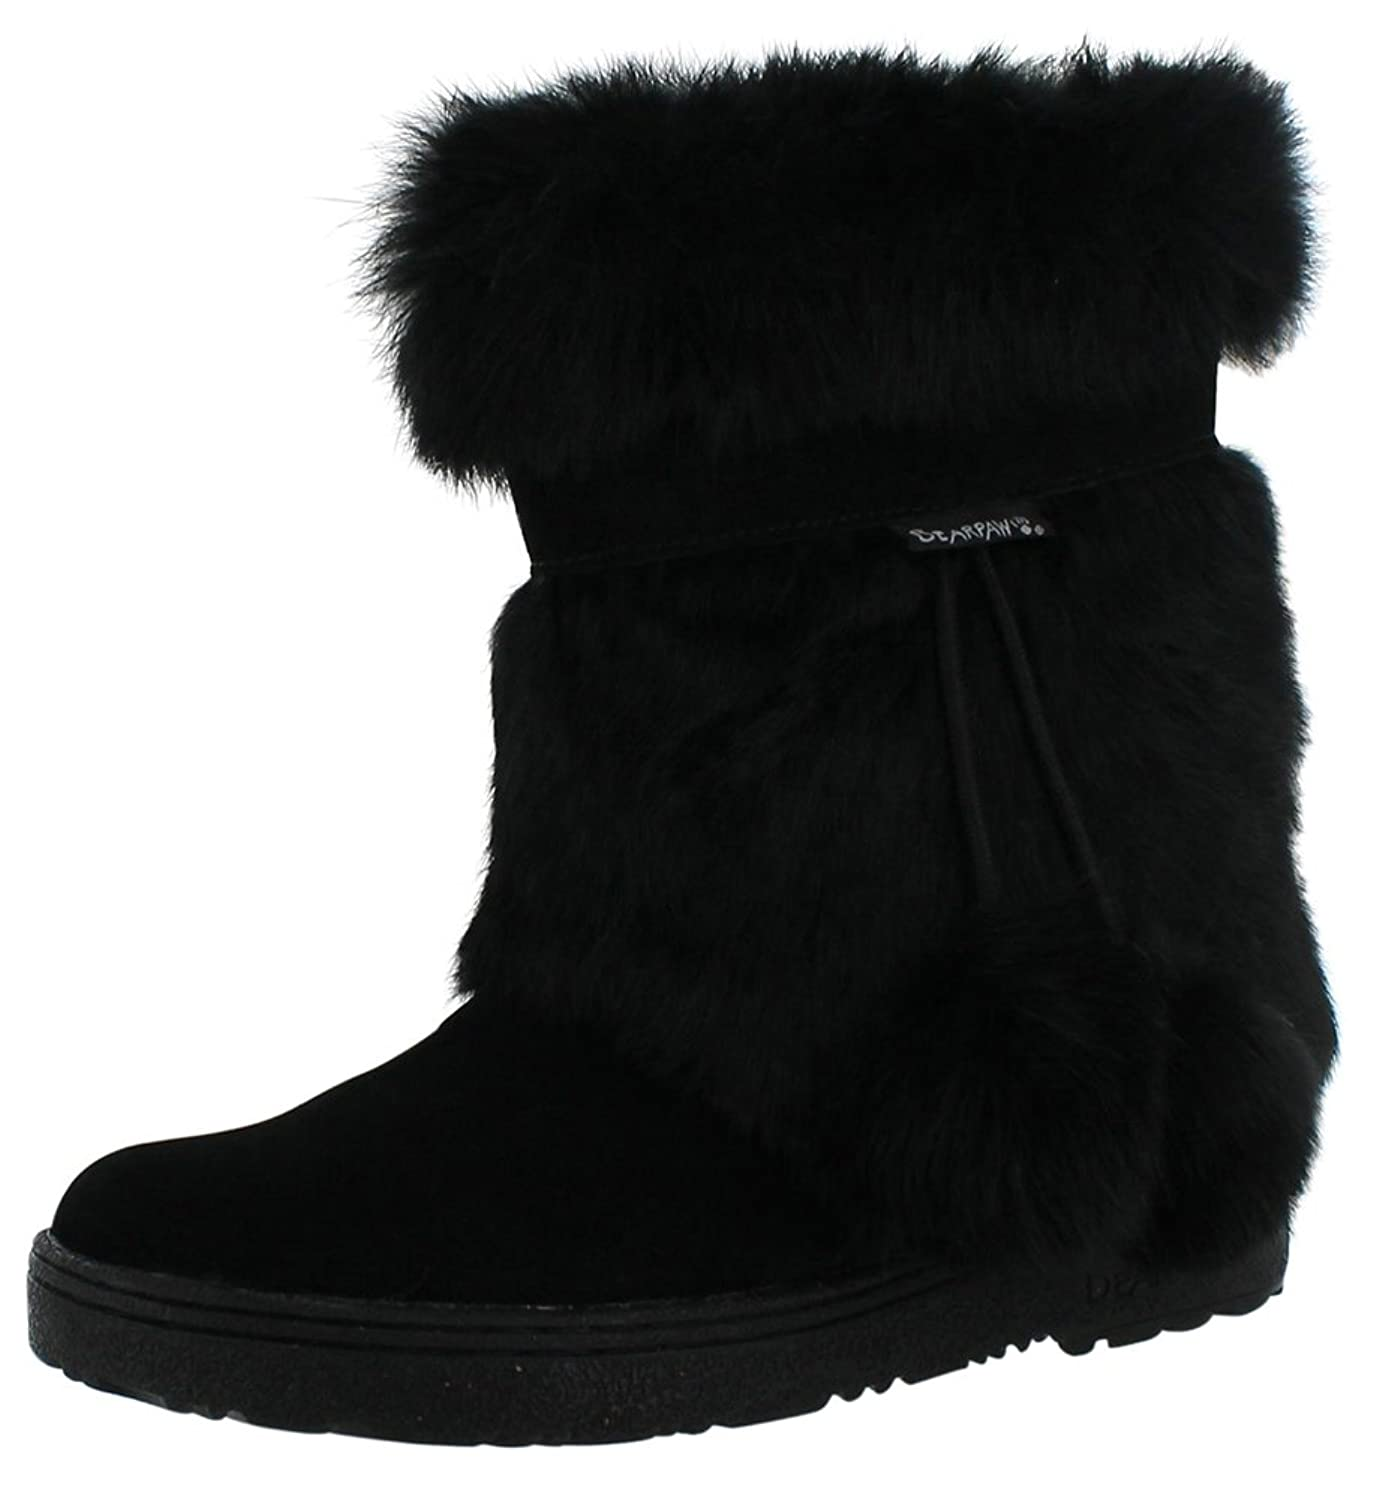 Bearpaw Women's Tama Rabbit Fur Boots